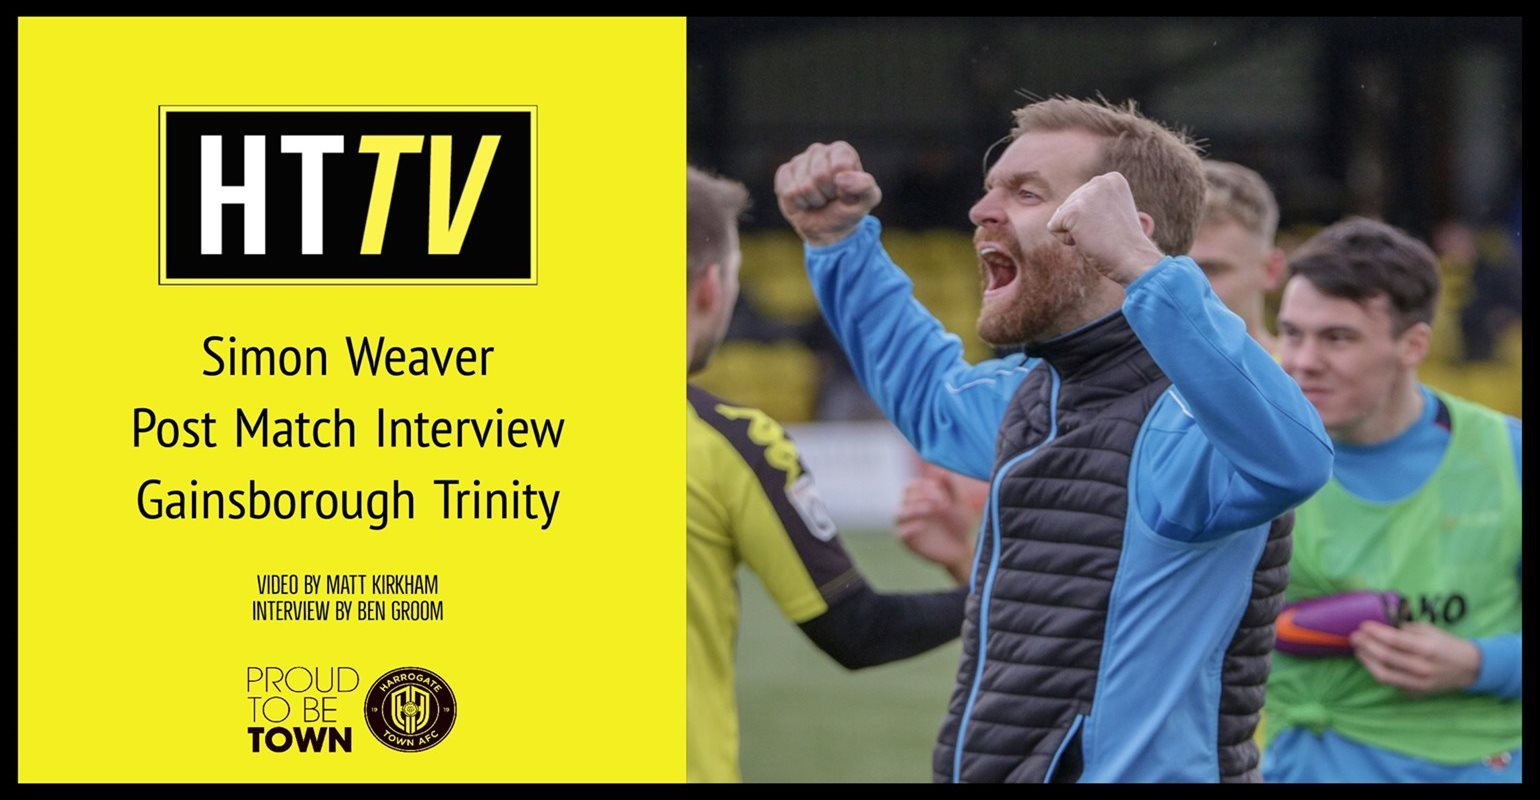 HTTV | Simon Weaver Post Gainsborough